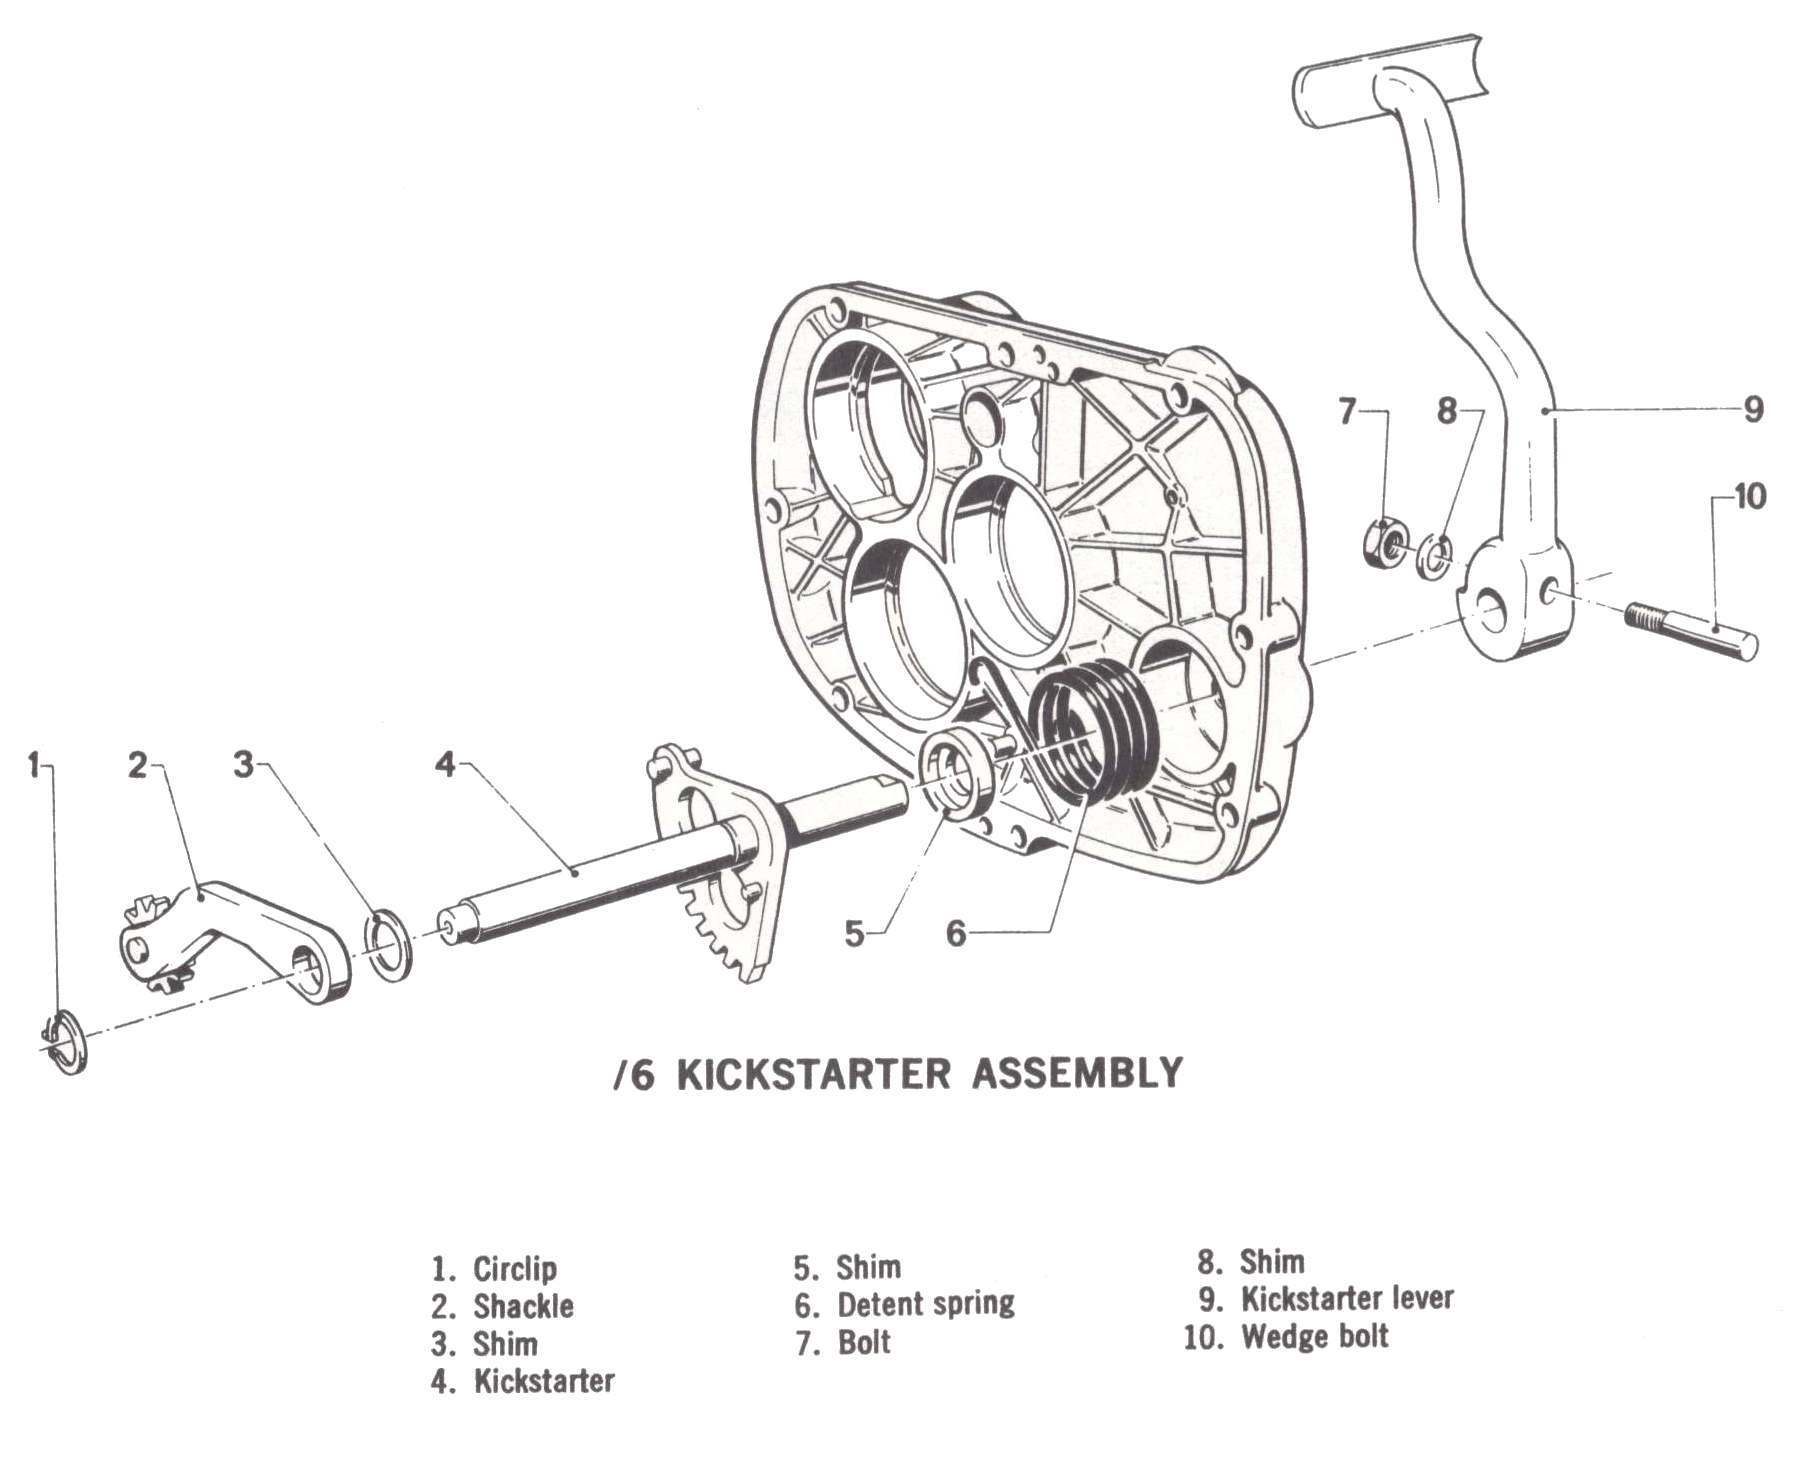 hight resolution of moped kick starter schematic wiring diagrams wni moped kick starter schematic